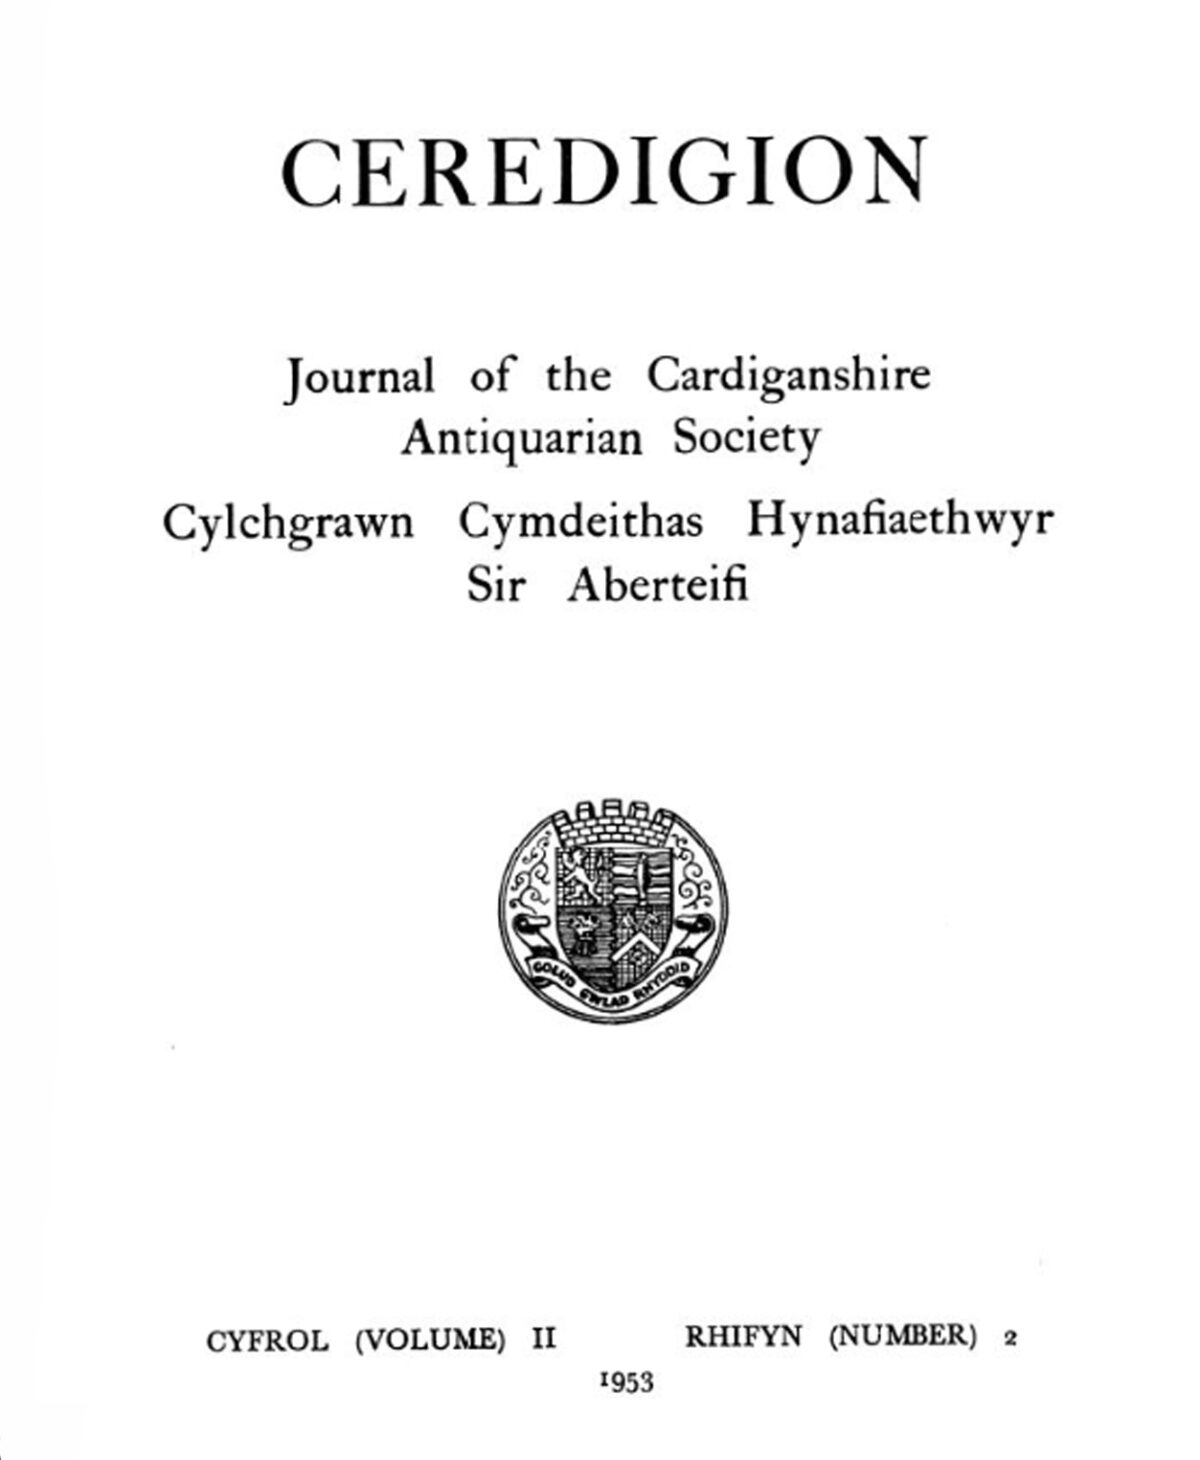 Journal of the Cardiganshire Antiquarian Society Vol II No 2 1953